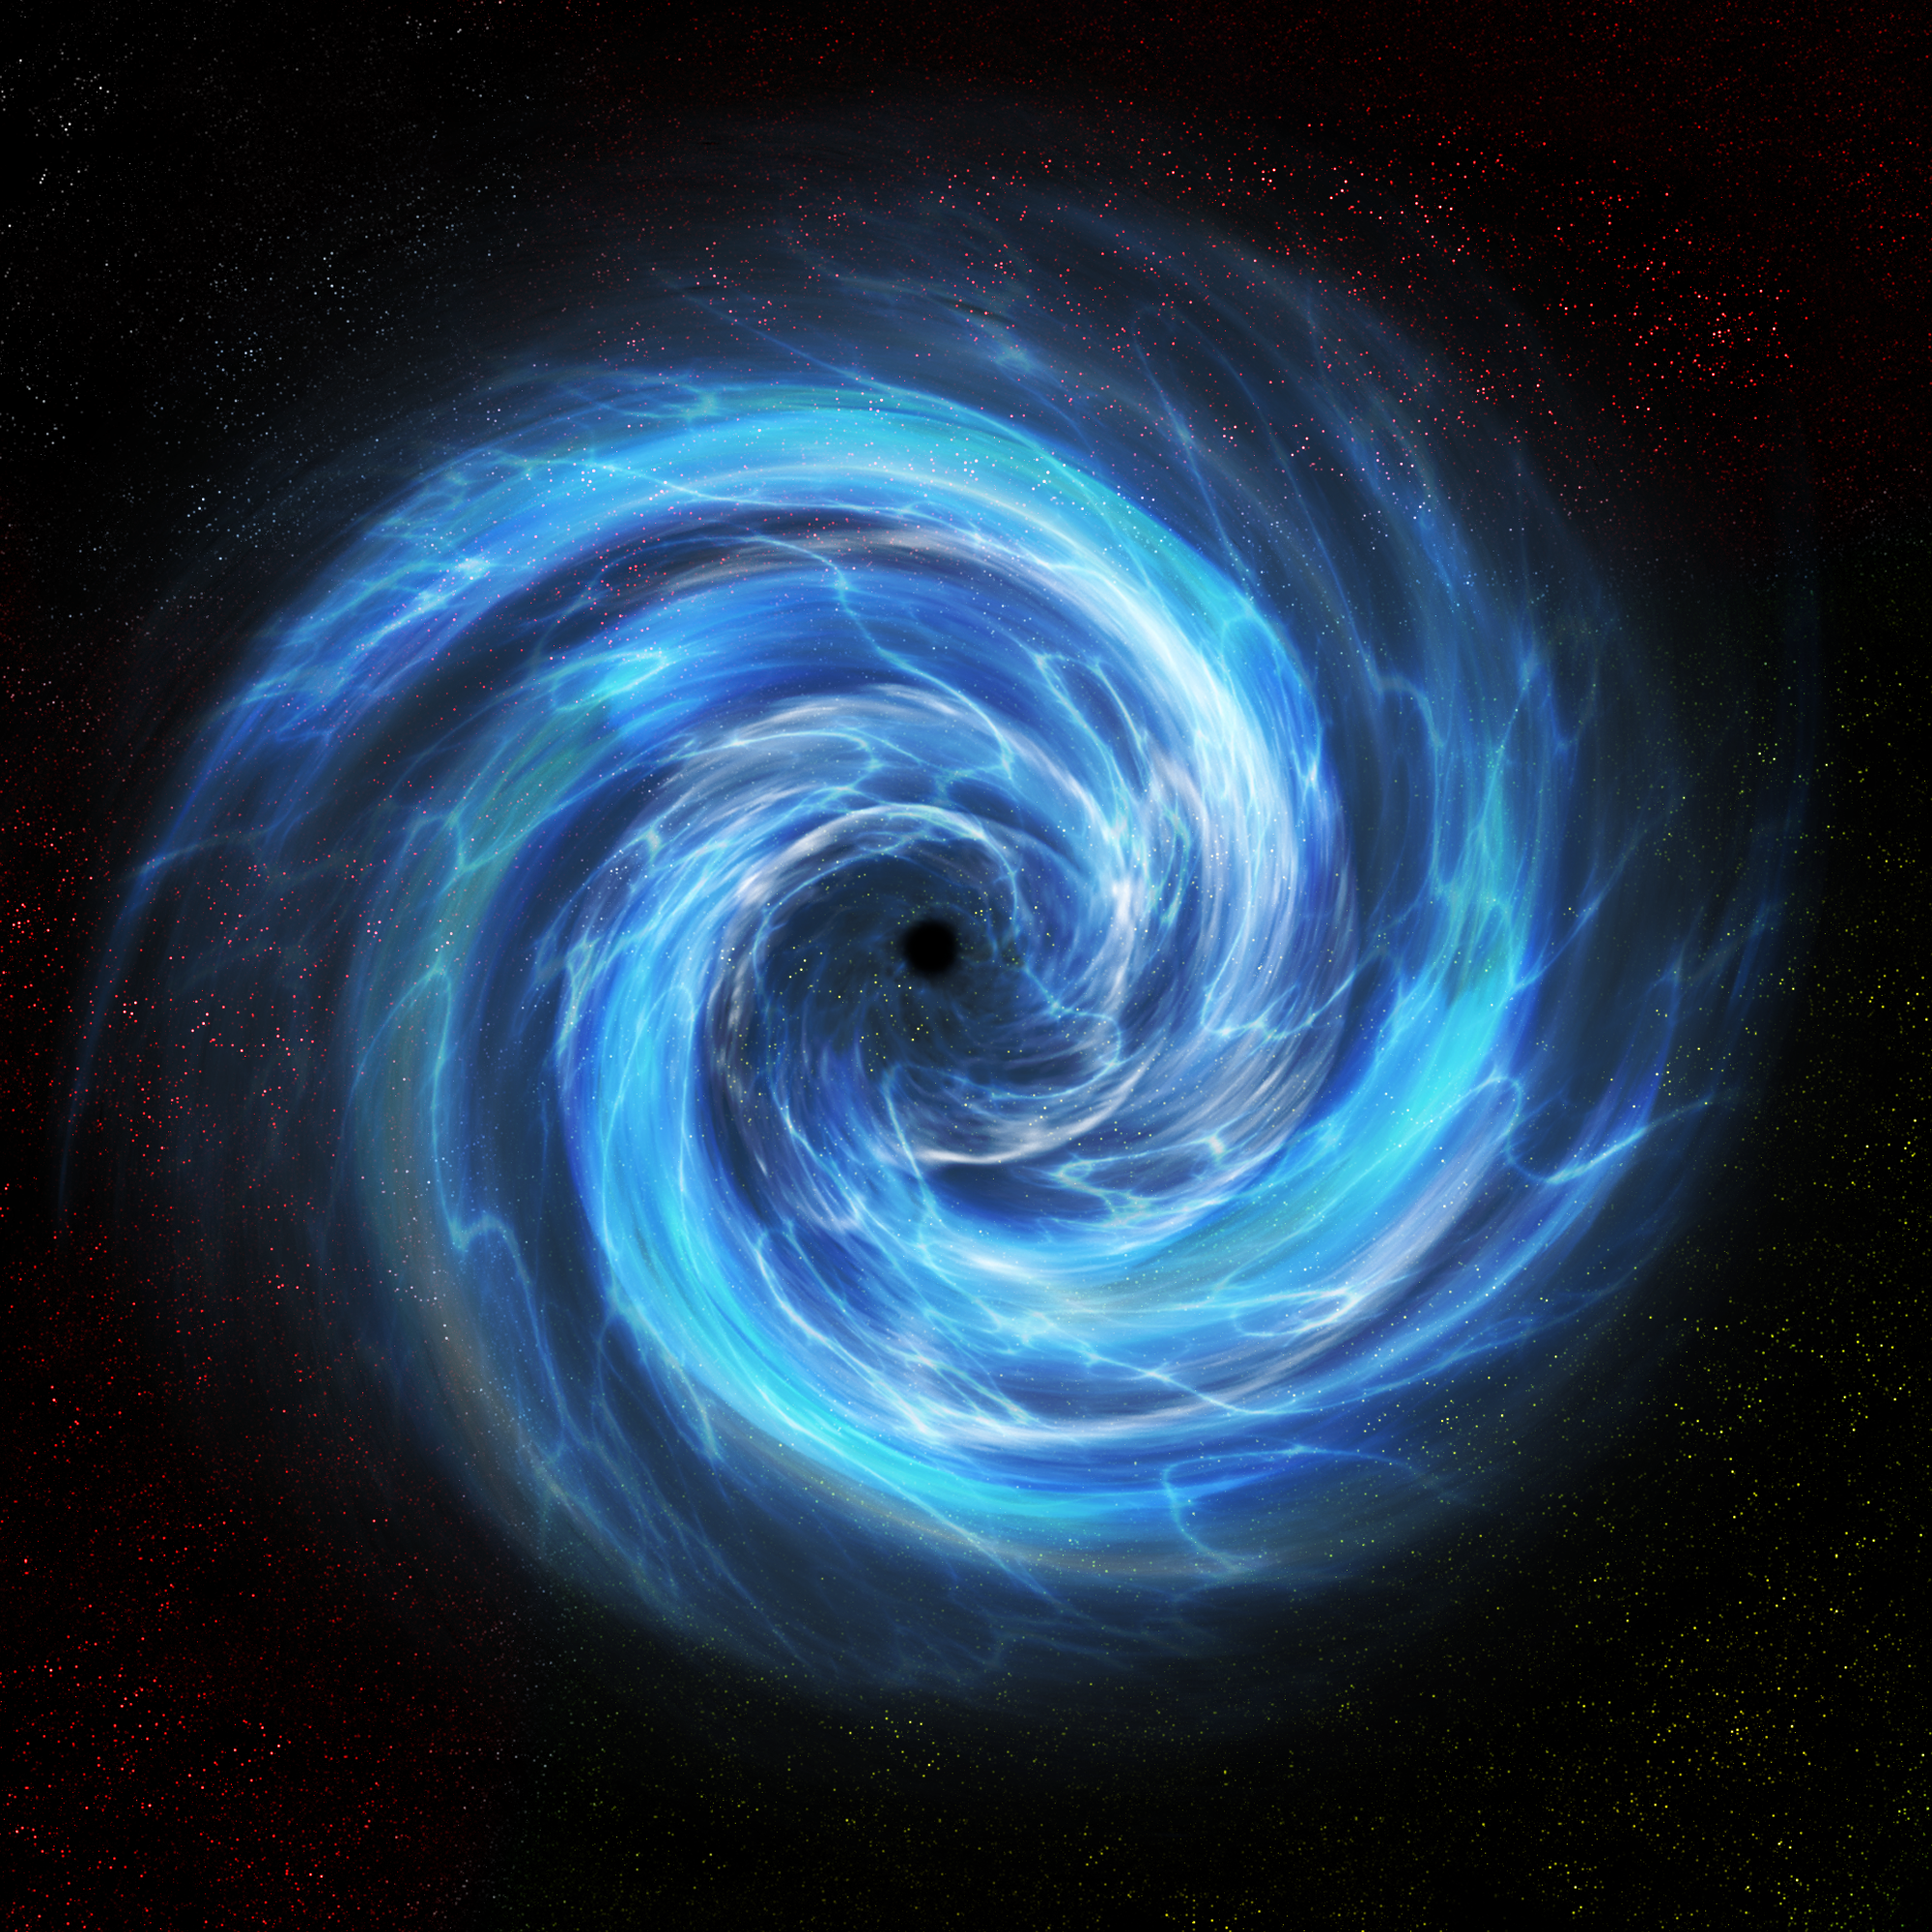 wormhole wallpaper space - photo #23